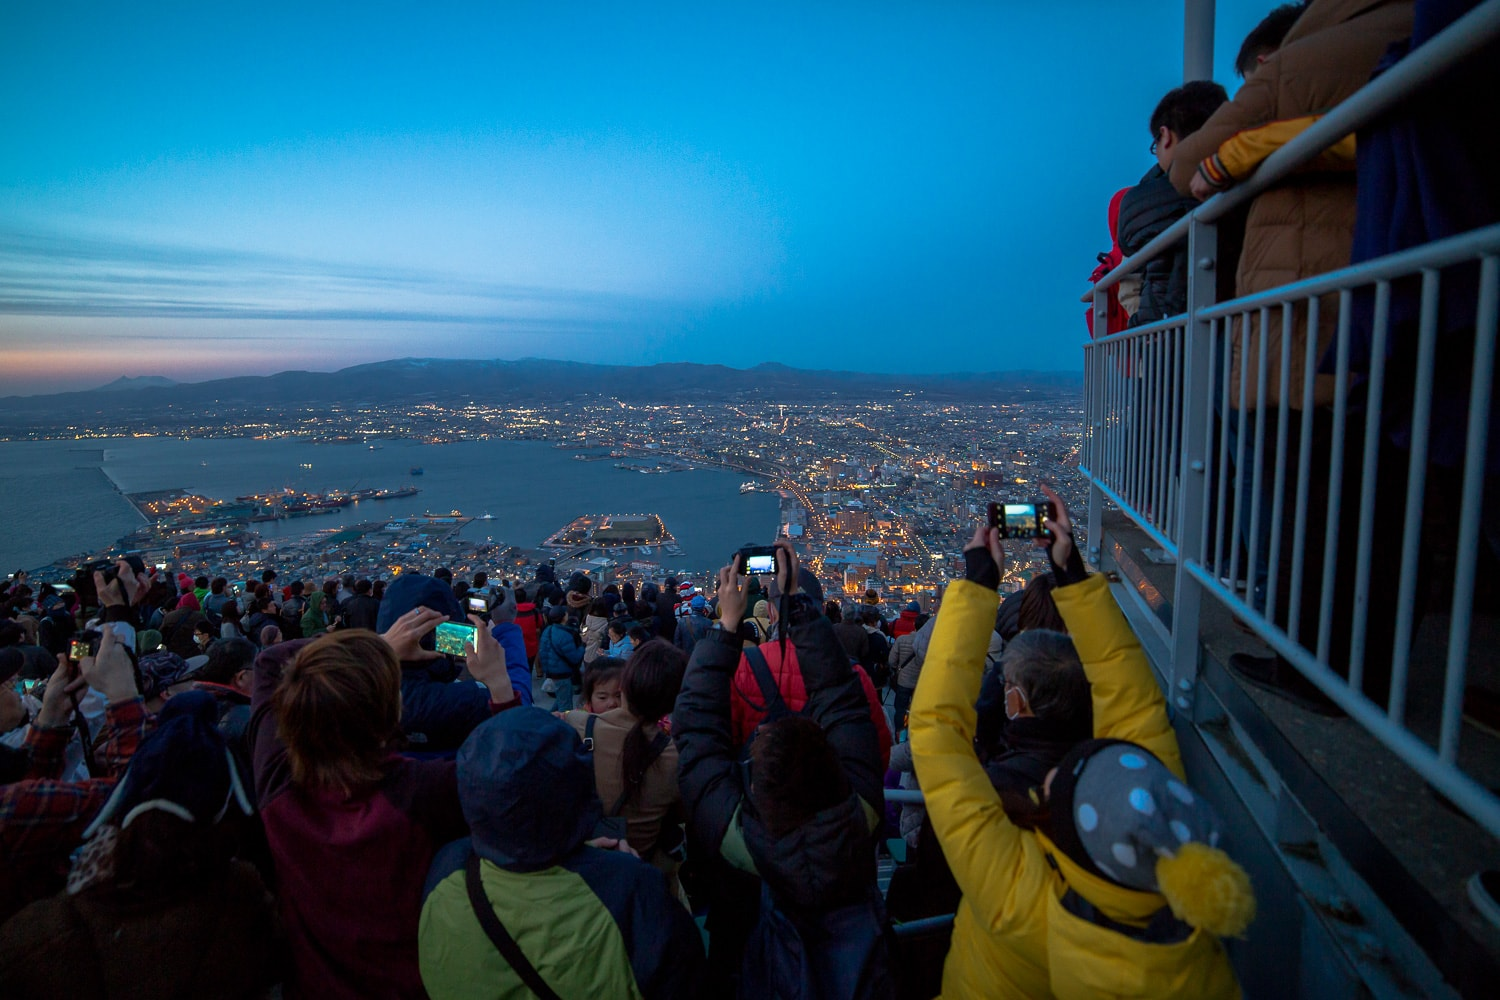 Hakodate night view - the reality of the crowds.  Absolutely packed.